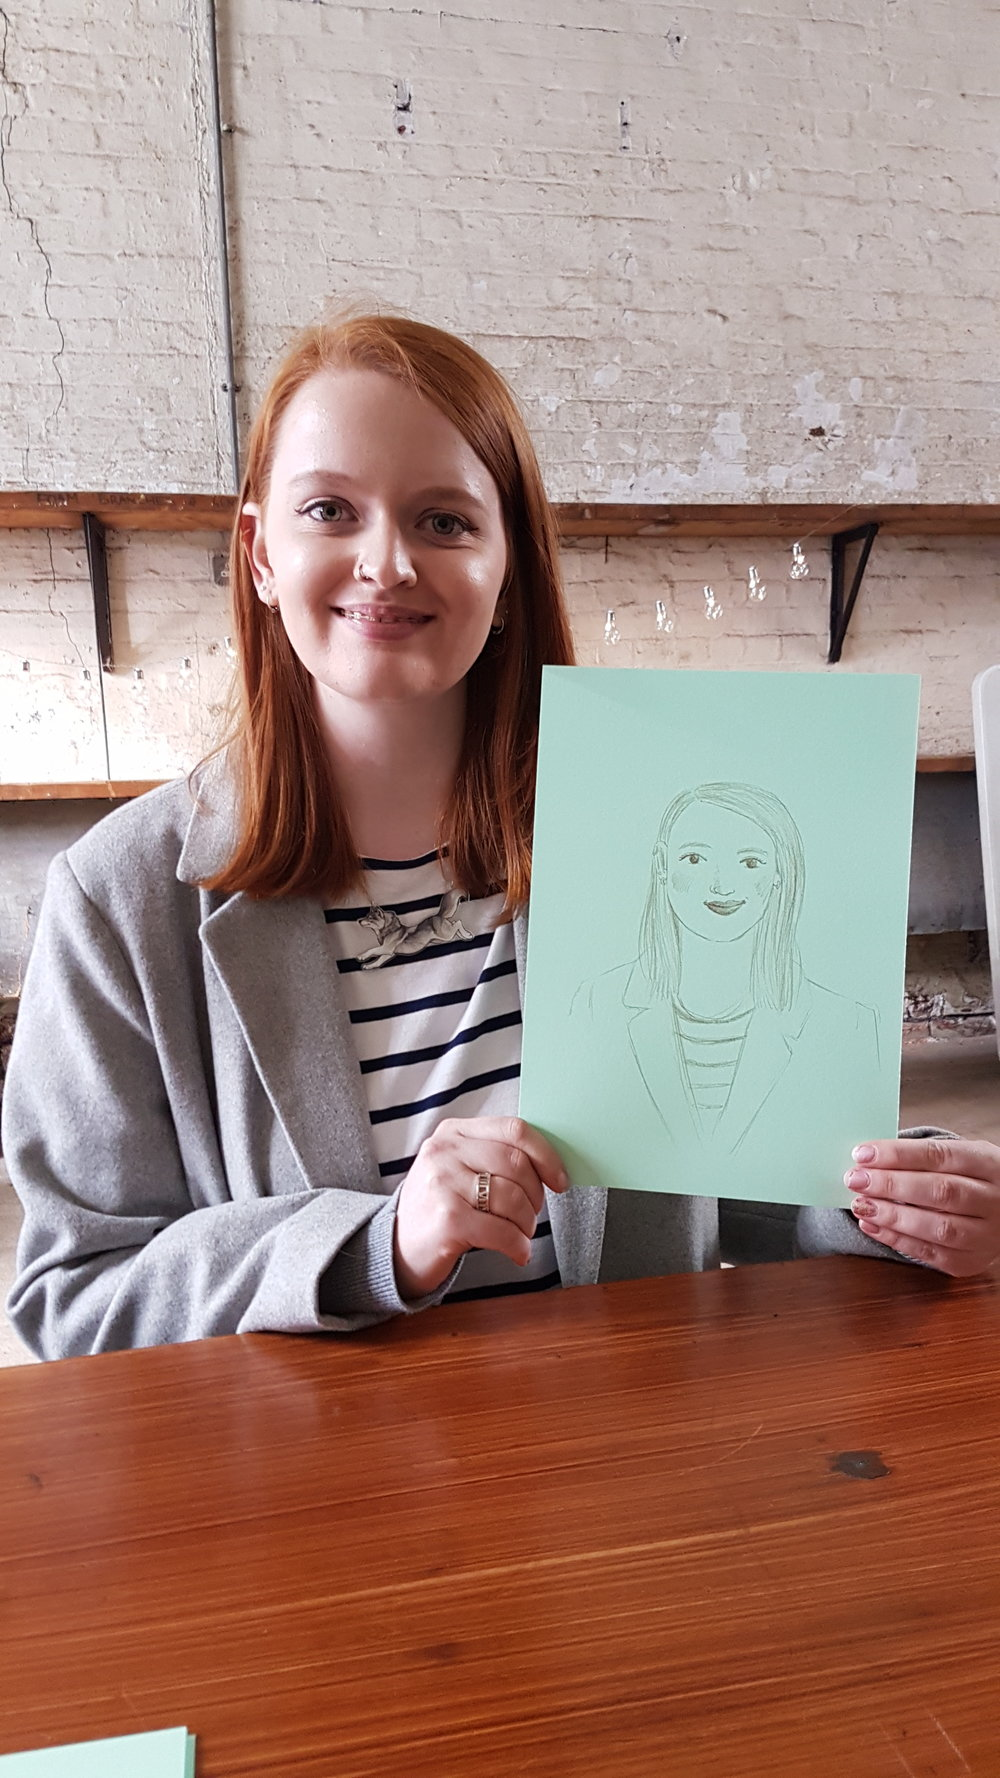 3 Minute Portraits from Fred Aldous. Portrait by Emma Reynolds